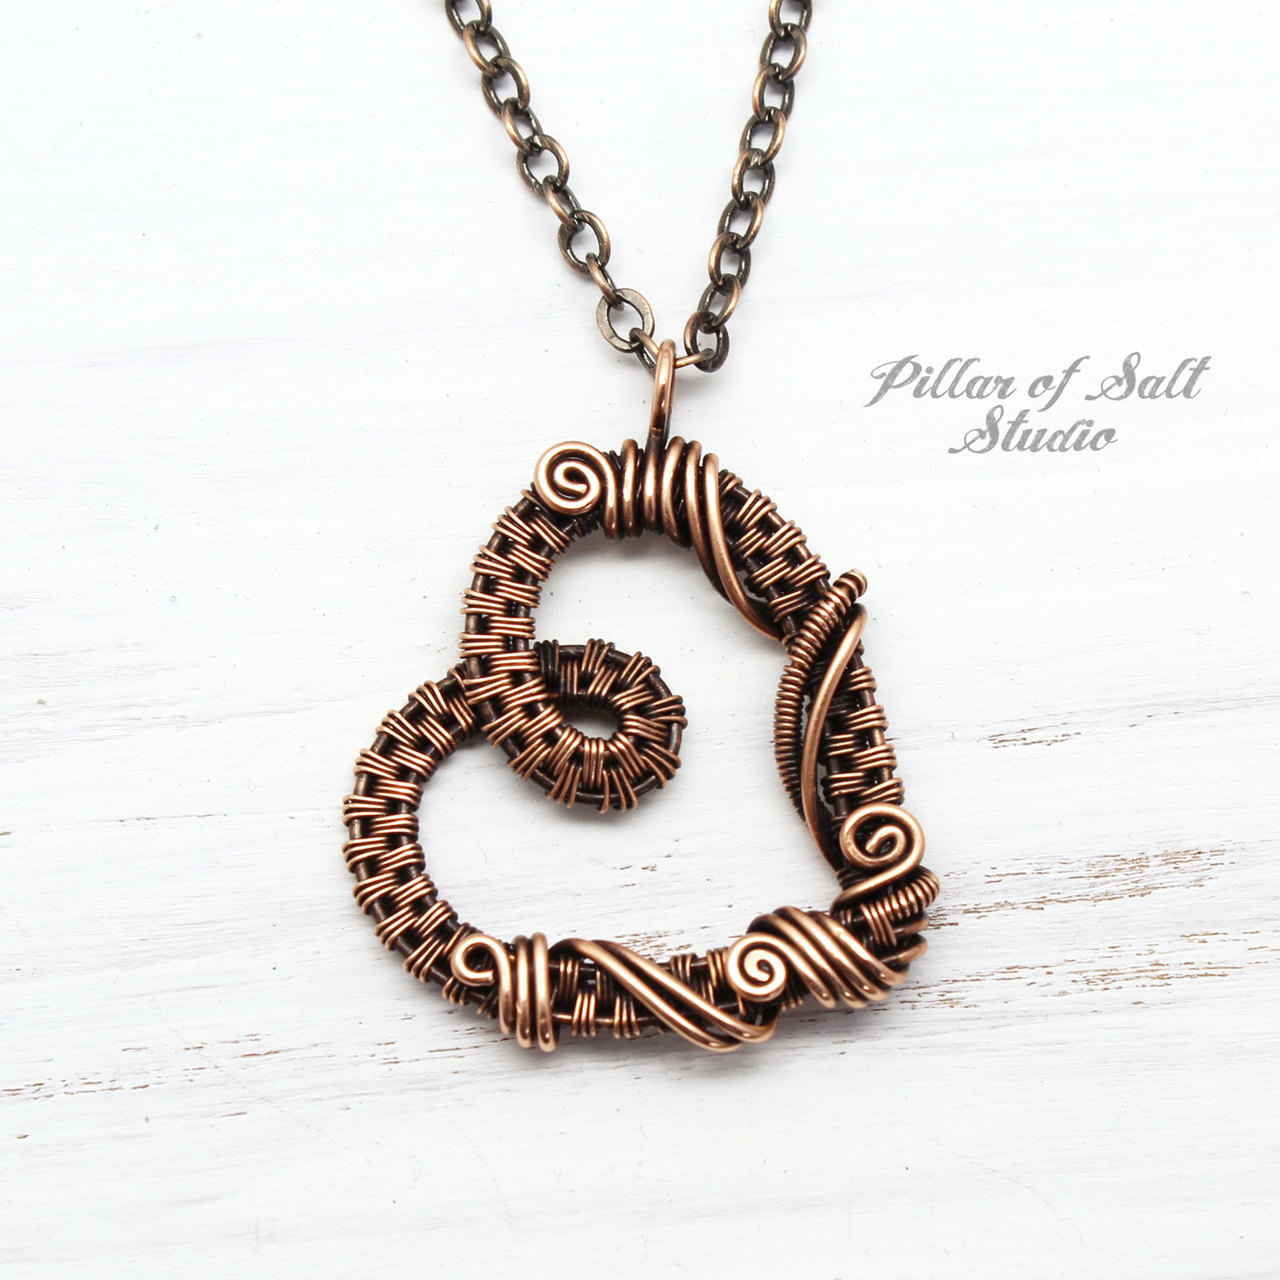 Copper woven wire heart pendant by Pillar of Salt Studio